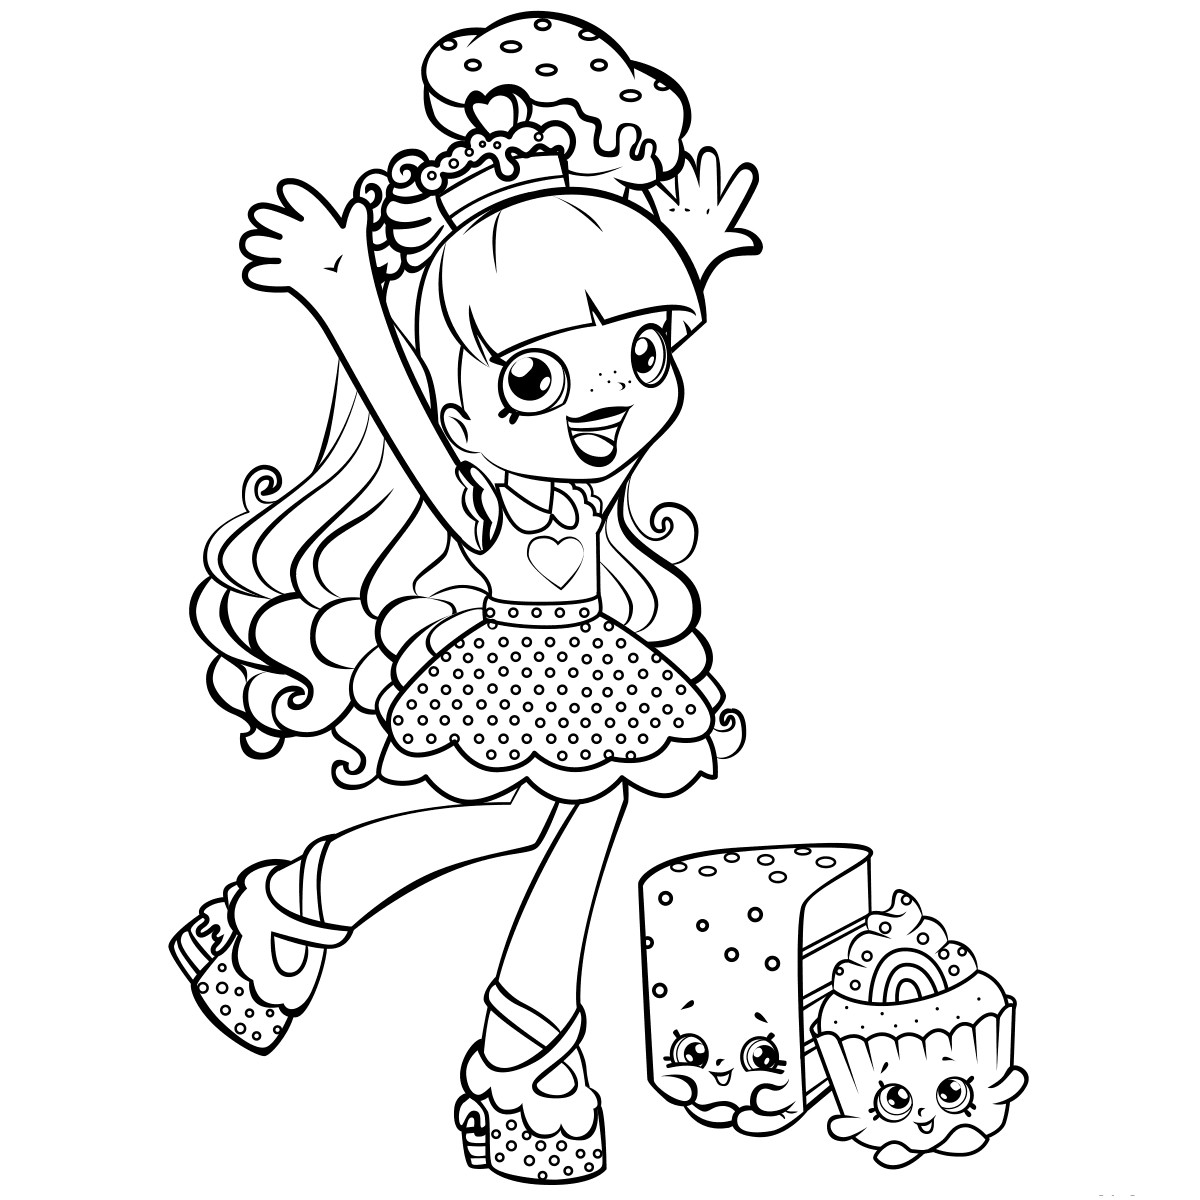 Best ideas about Coloring Pages For Girls Shopkins . Save or Pin Shopkins Coloring Pages Now.